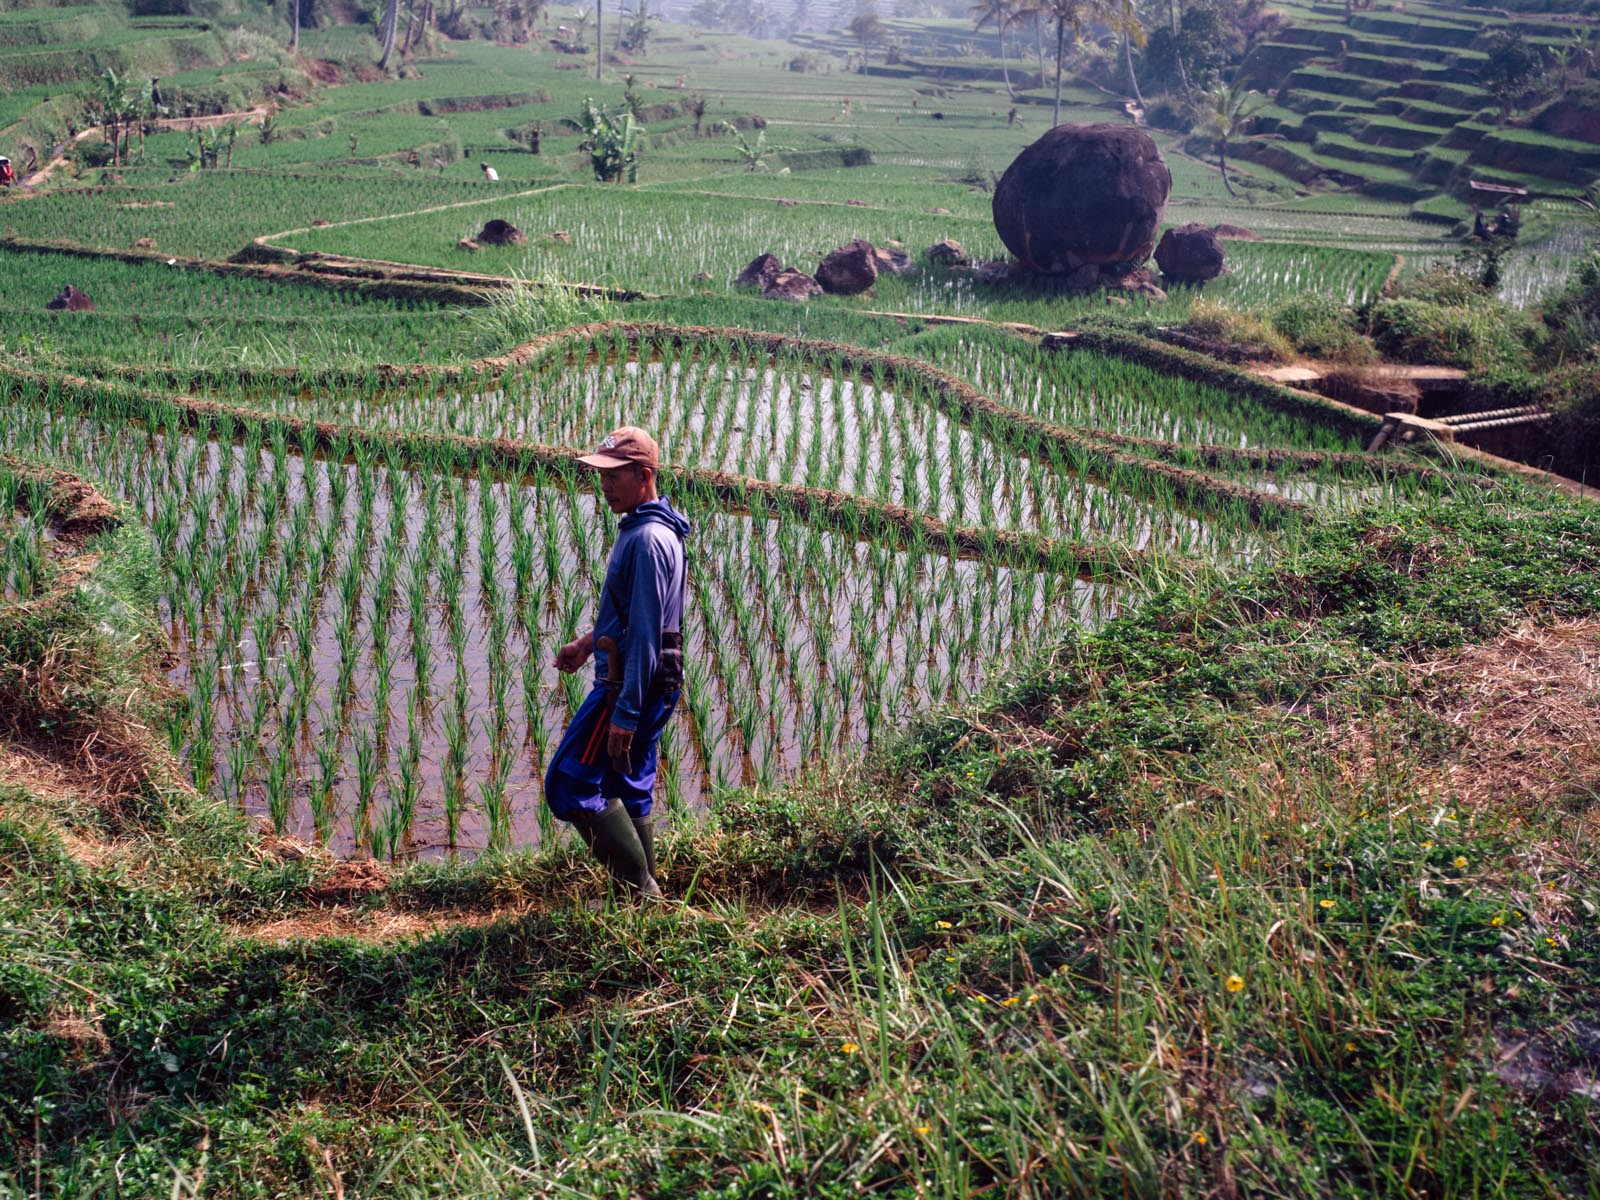 A man working on the rice fields.